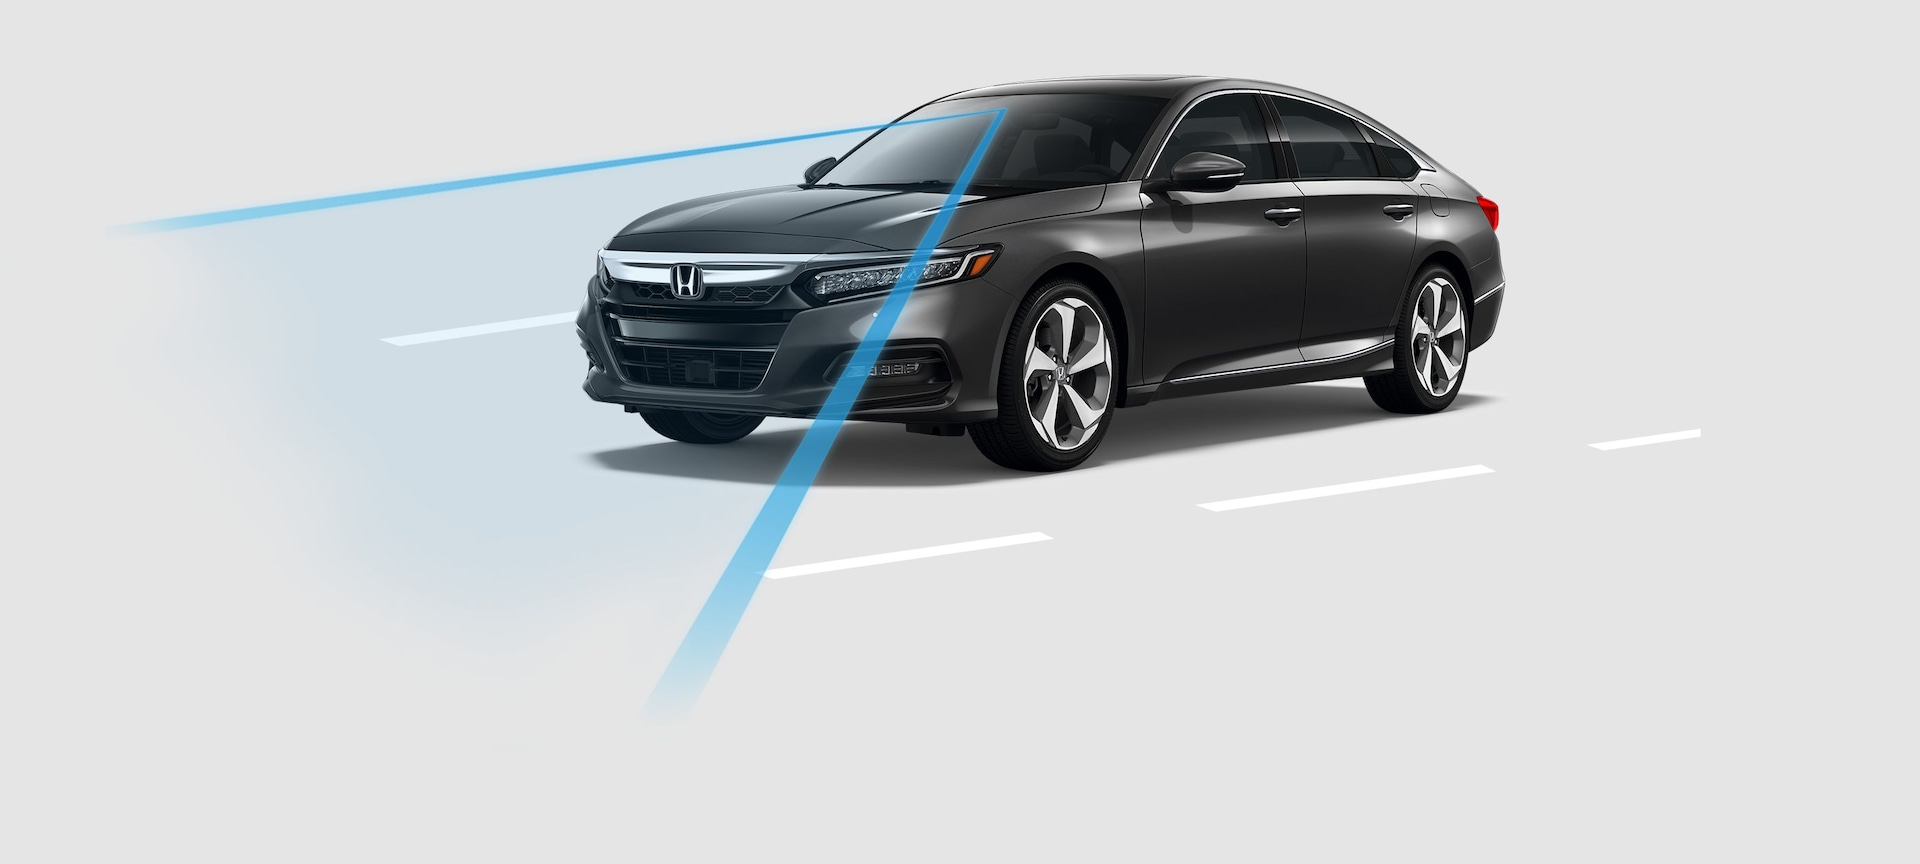 Front 3/4 of 2019 Honda Accord with demonstration of Road Departure Mitigation System (RDM).